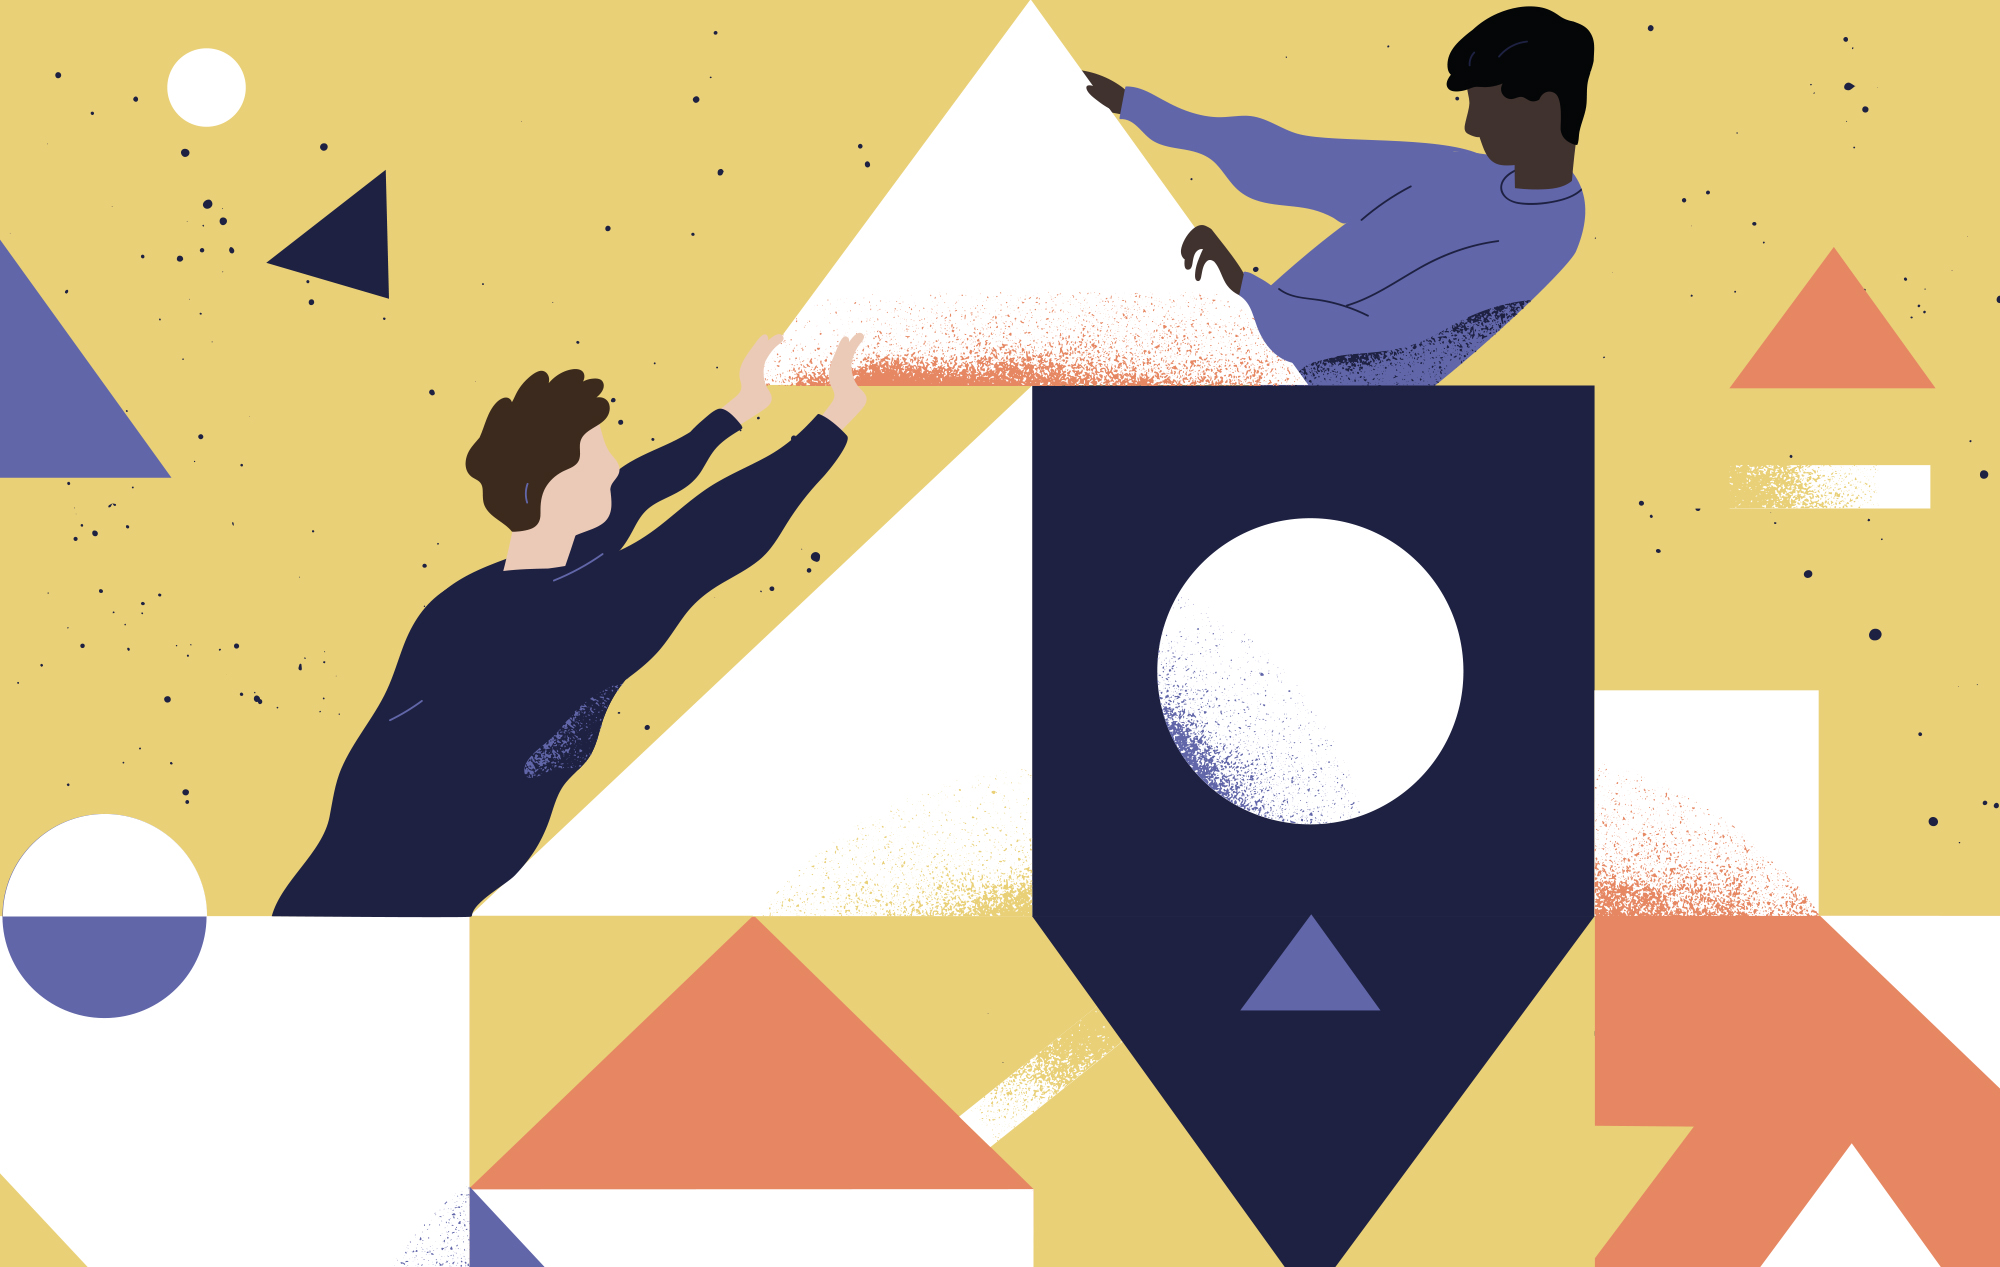 Illustration of an abstract interpretation of teamwork. One person pushes up a large triangle and another person pulls.